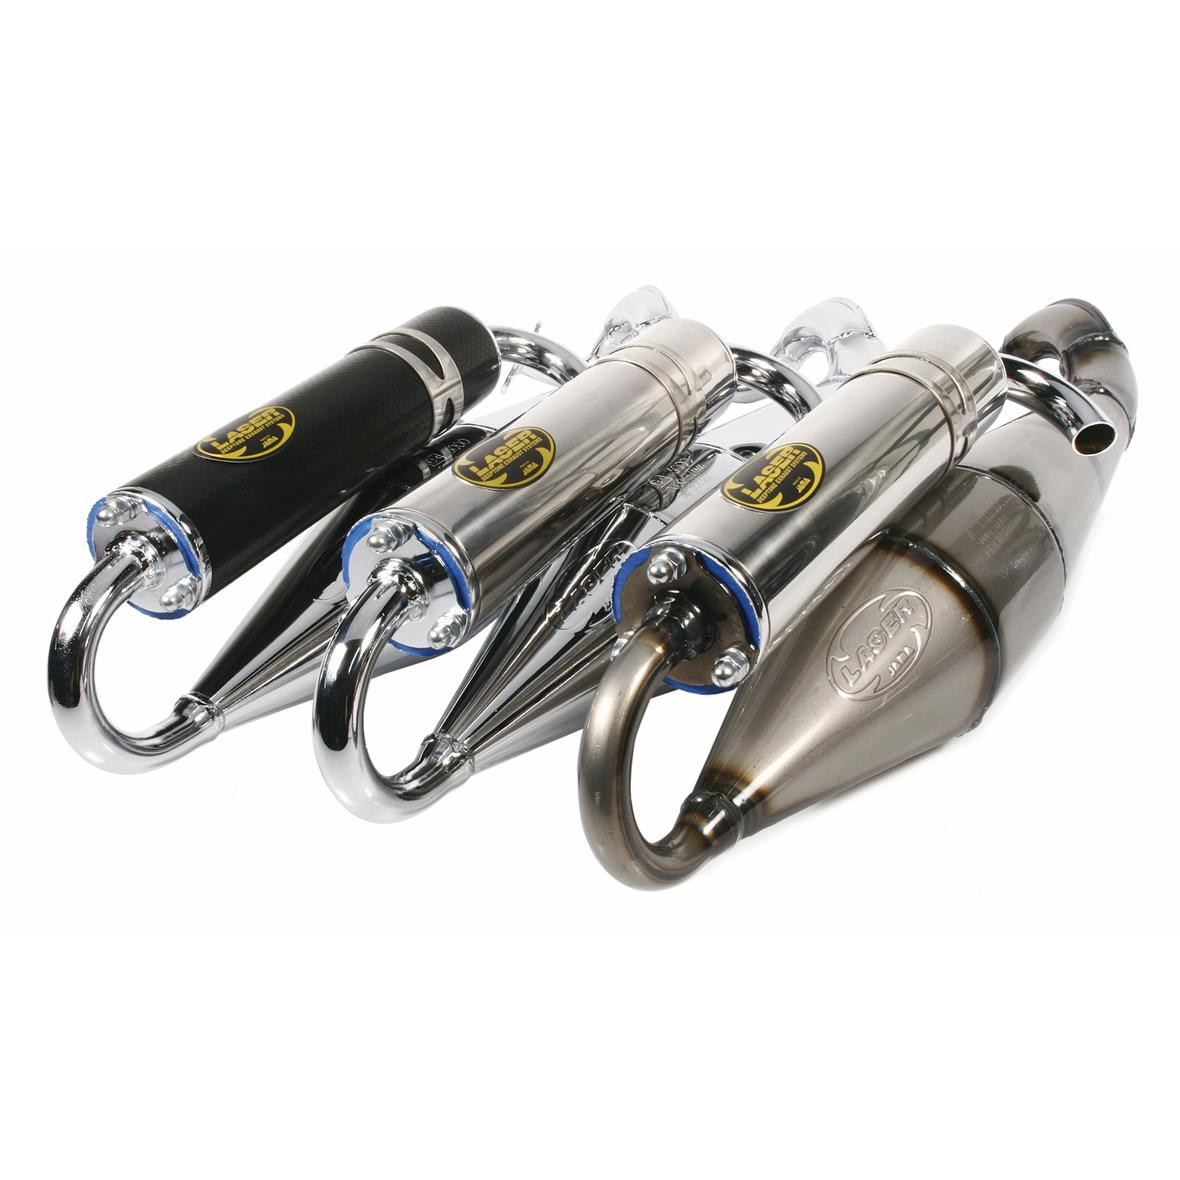 Product Image for 'Racing Exhaust LASER X-ProTitle'